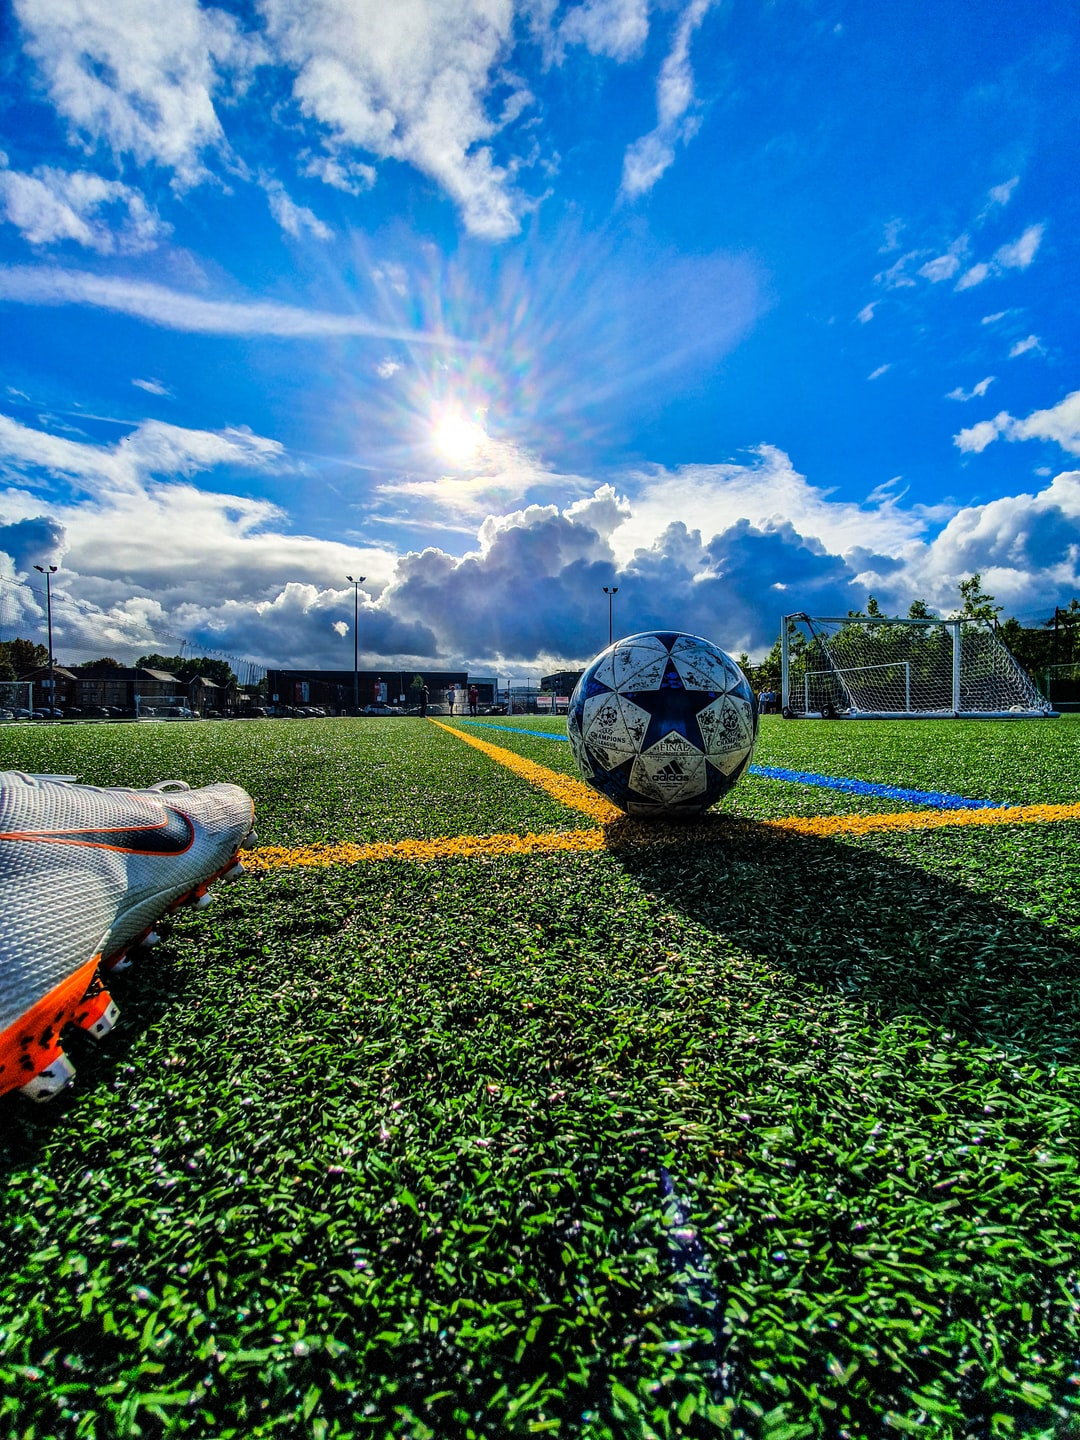 a day out in the sun playing football